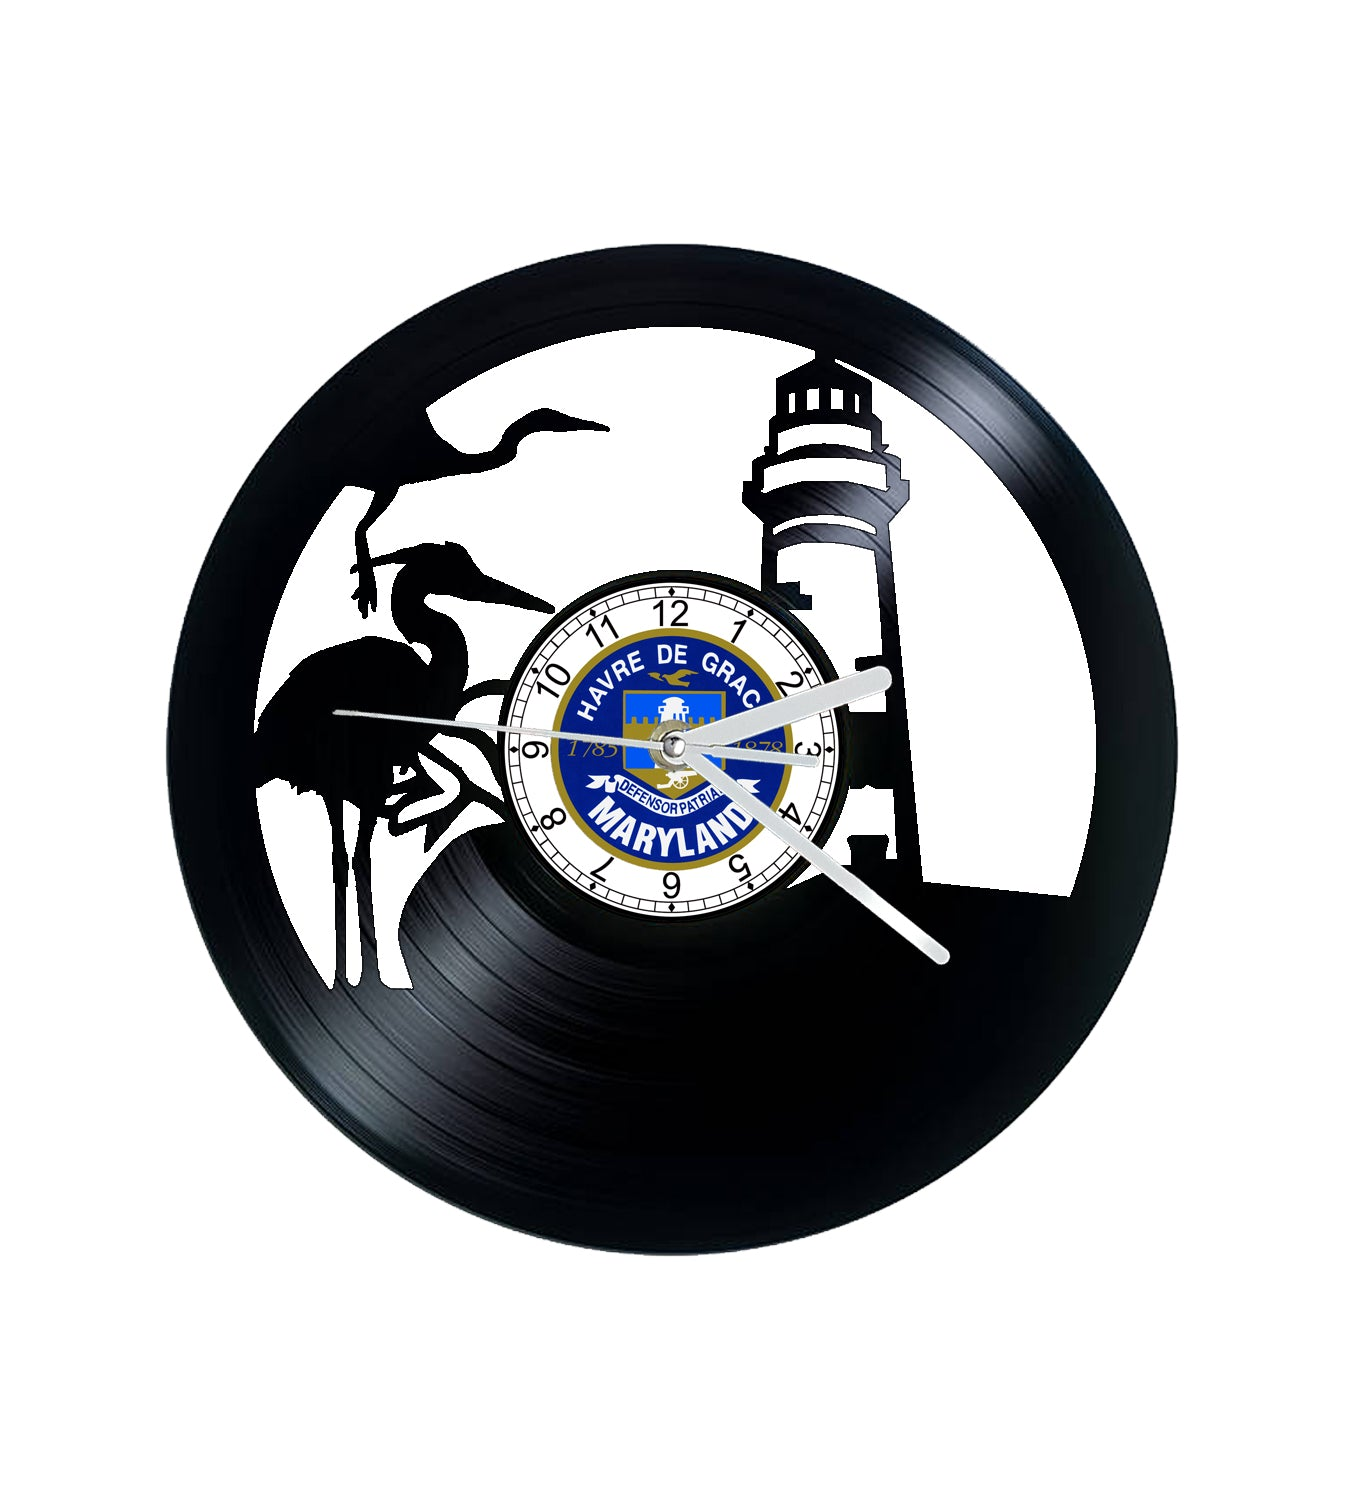 Vinyl Clock, Havre De Grace, Heron, lighthouse, Wall Clock, Vinyl Record Clock